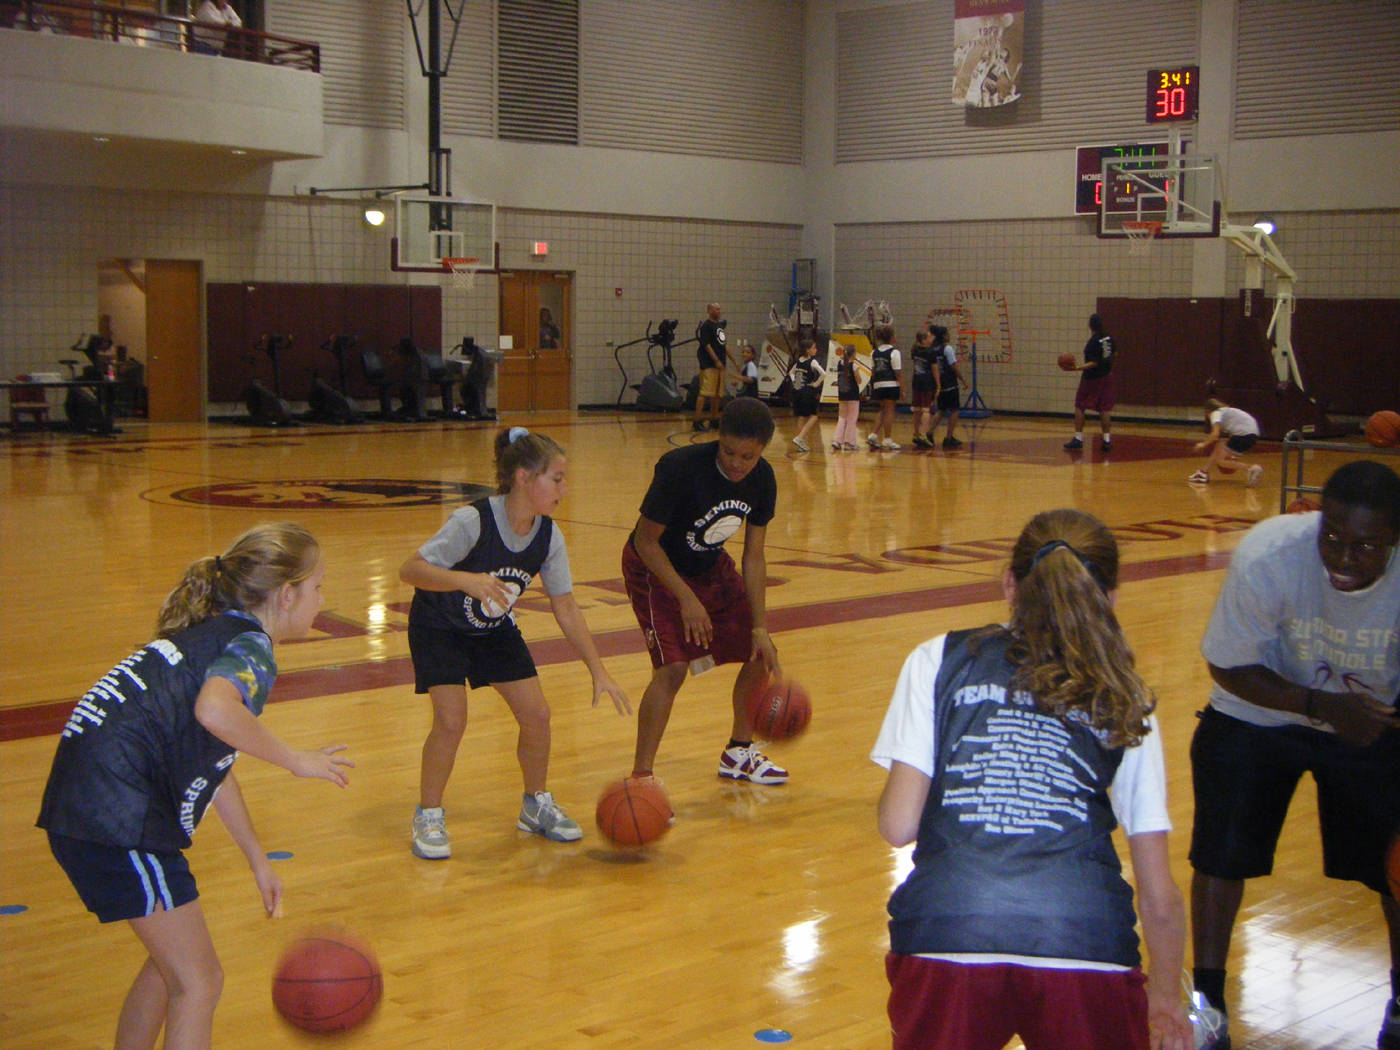 Freshman Courtney Ward instructing the girls on how to dribble.